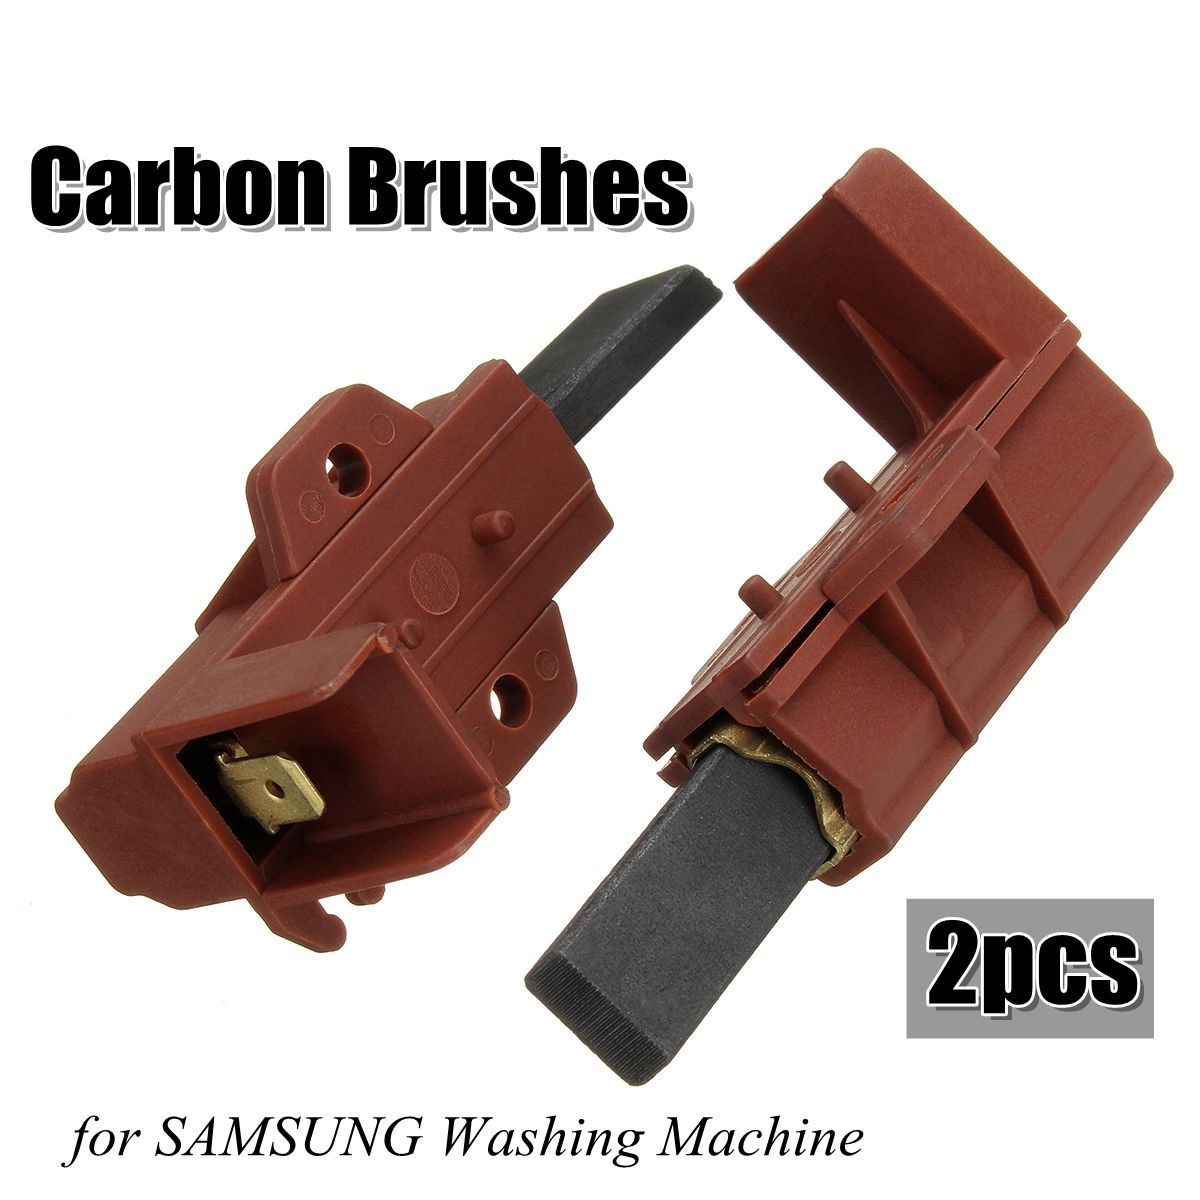 2pcs Washing Machine Motor Carbon Brush And Holder For SAMSUNG Ariston Indesit Welling